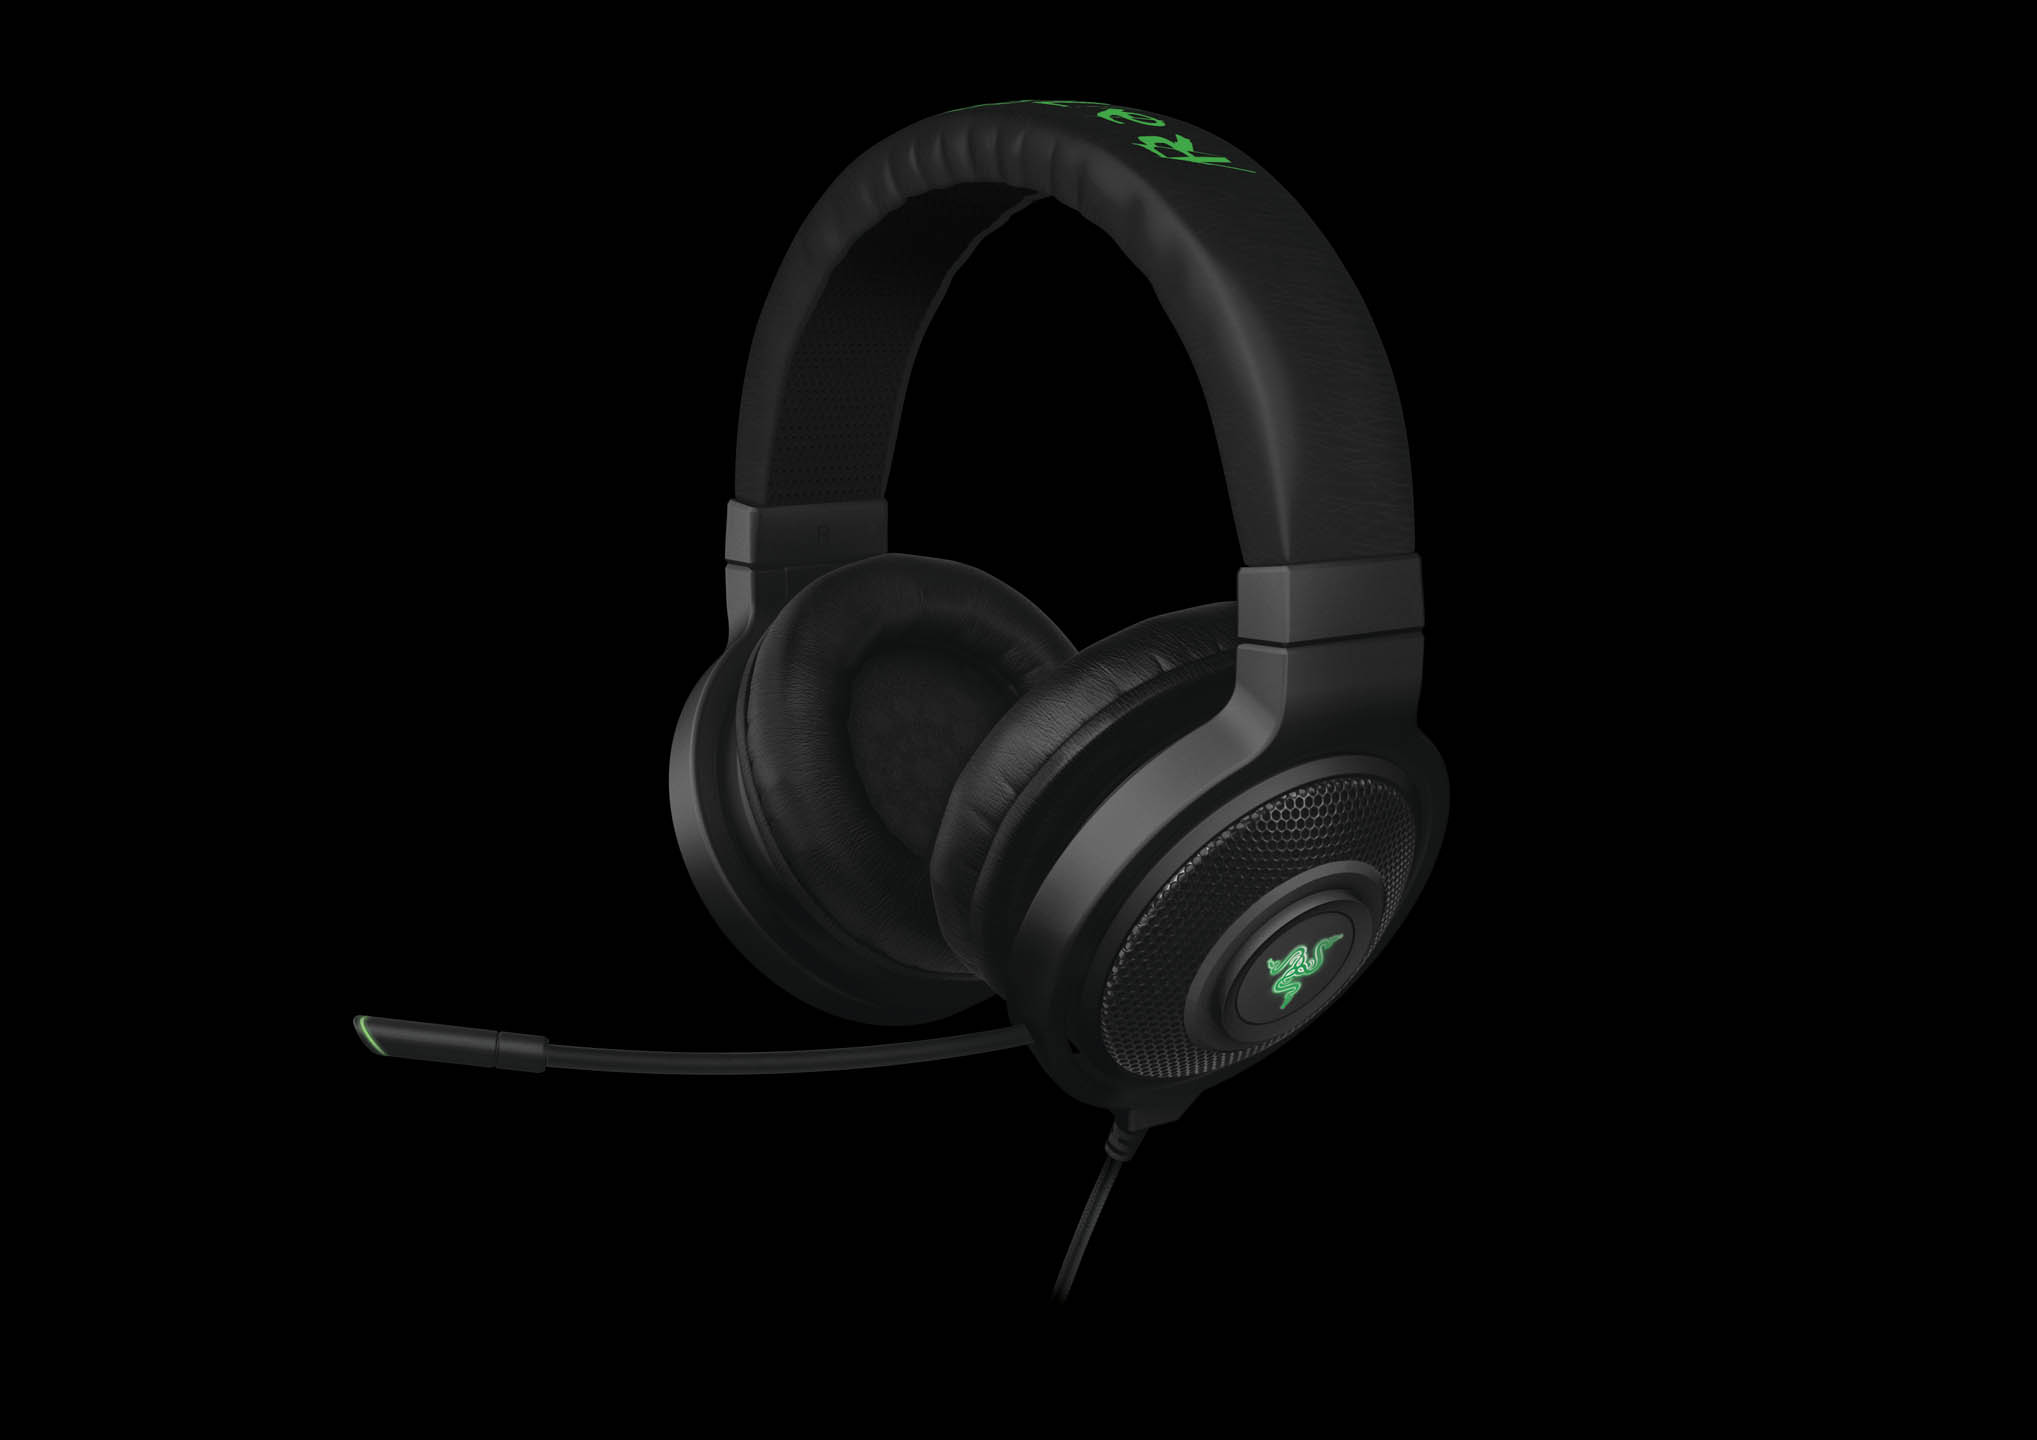 razer-kraken-7-1-surround-sound-gaming-headset-3